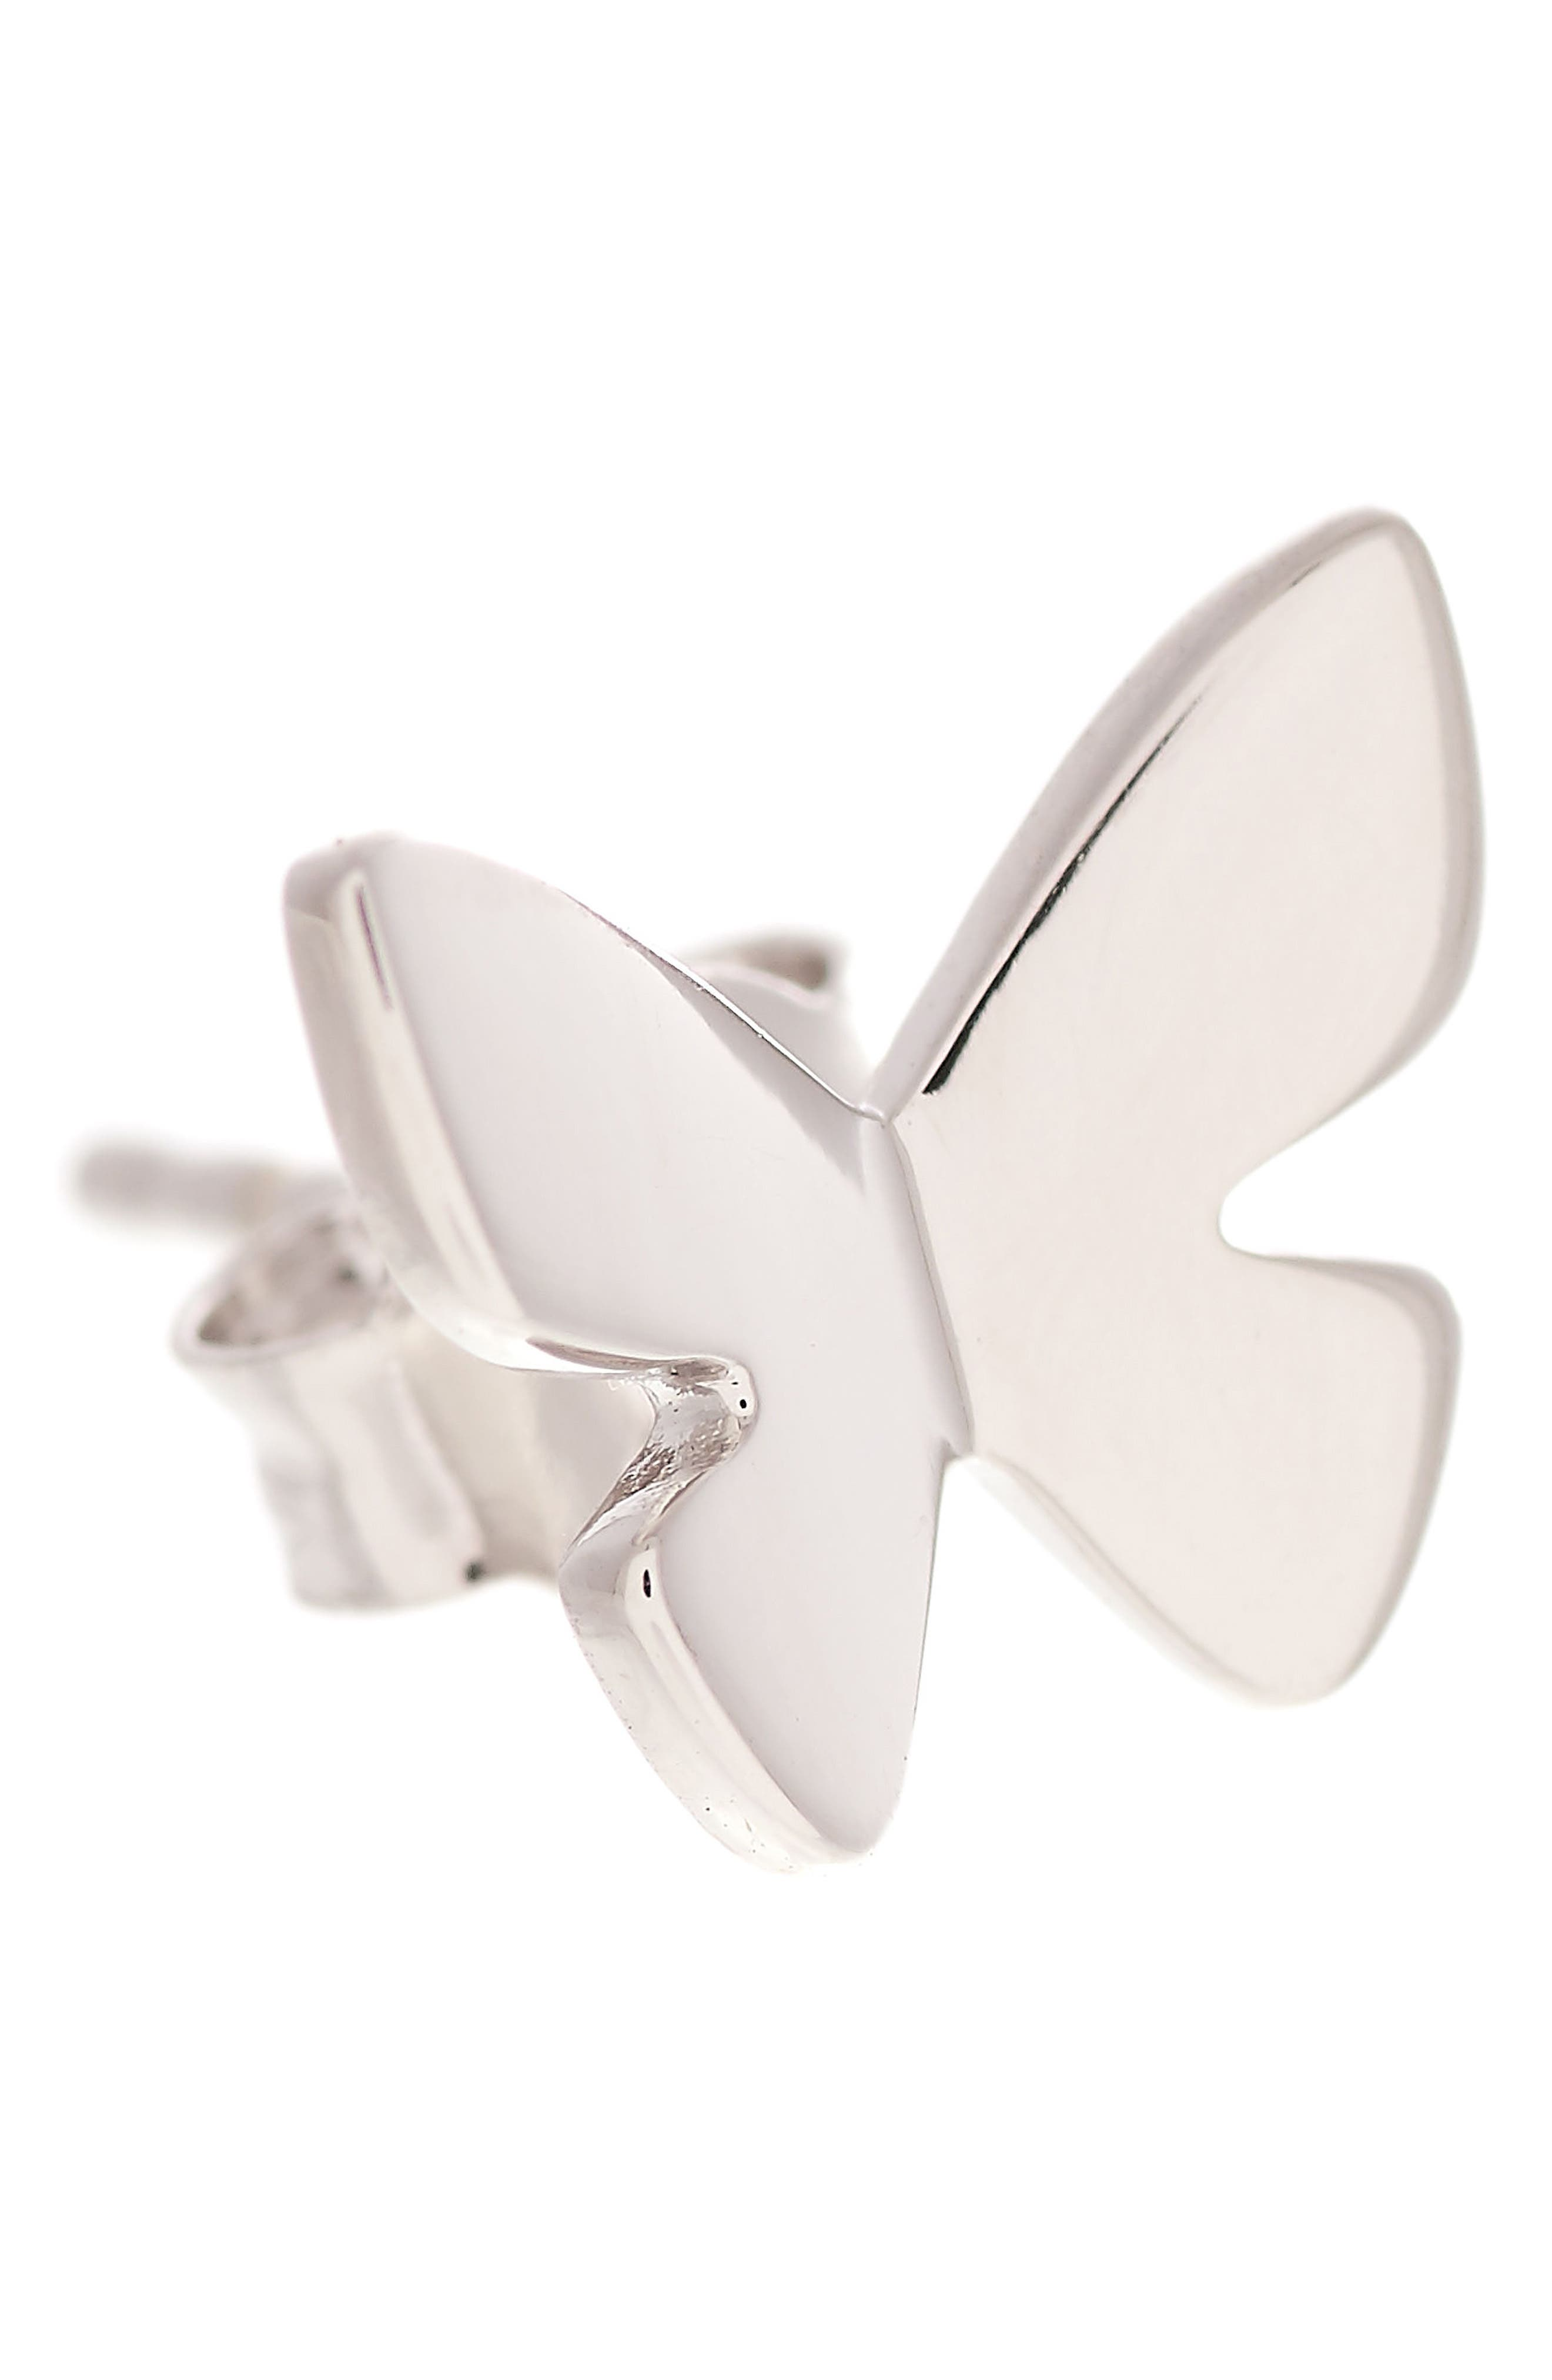 Social Butterfly Stud Earrings,                             Alternate thumbnail 2, color,                             SILVER